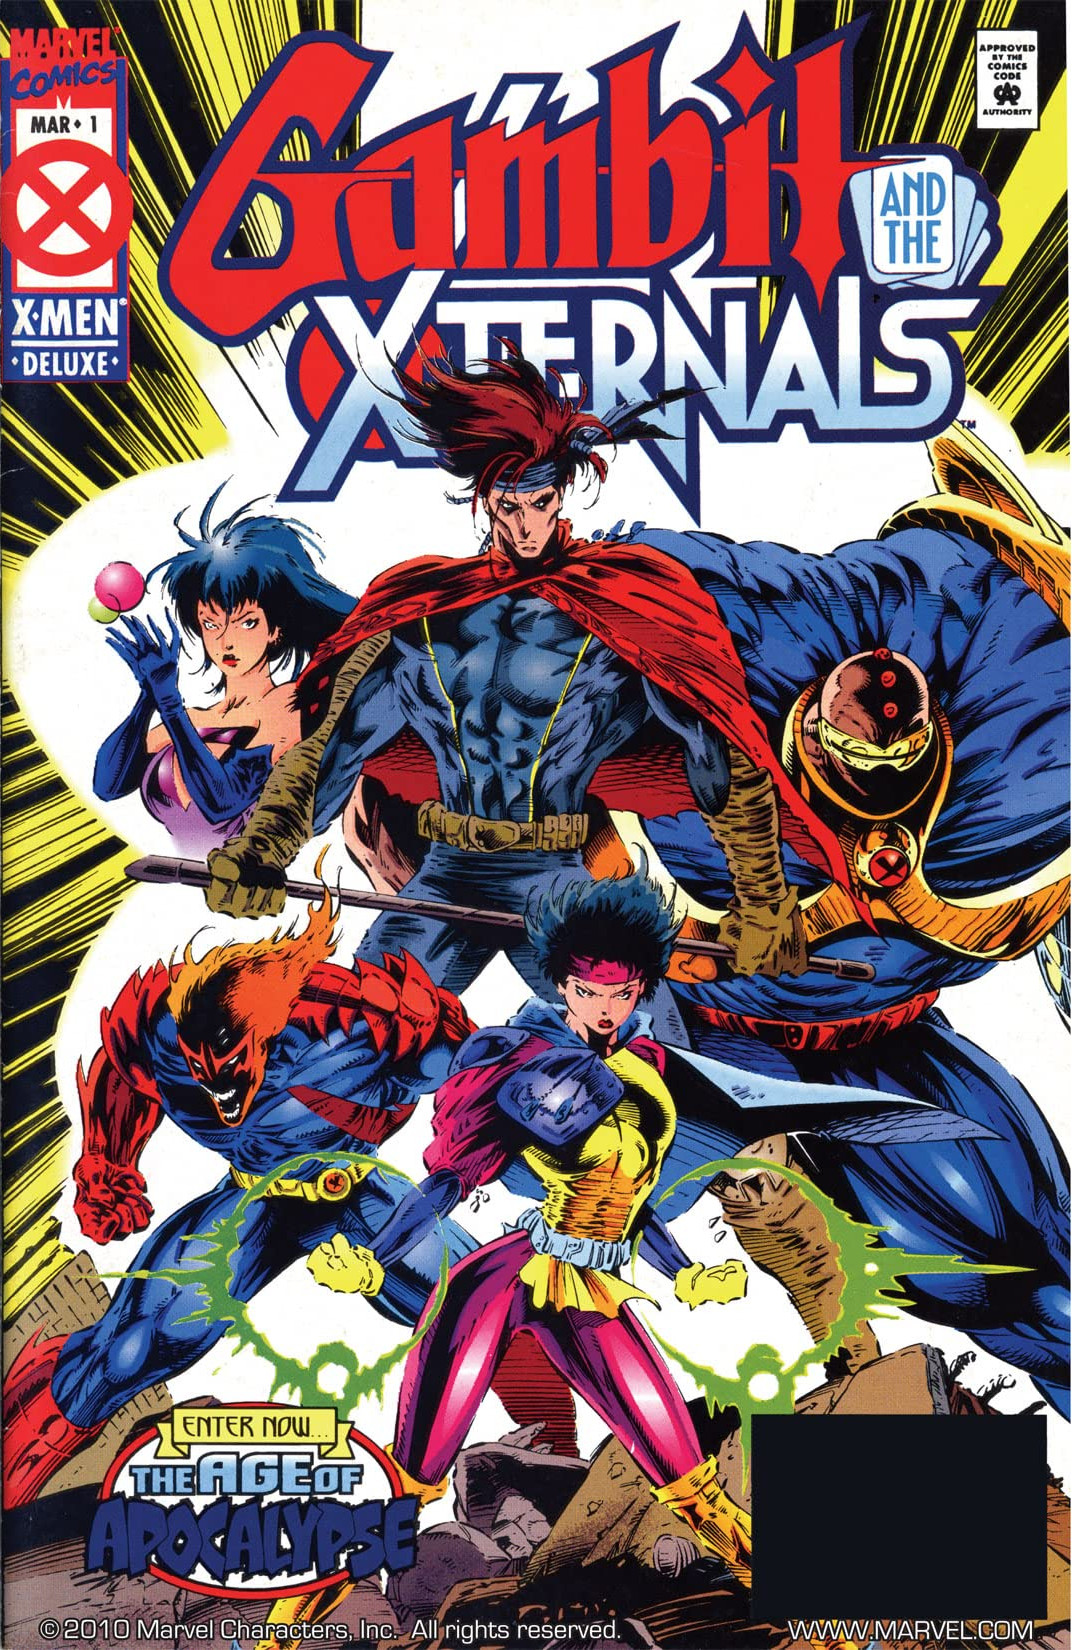 Gambit and the X-Ternals #1 cover